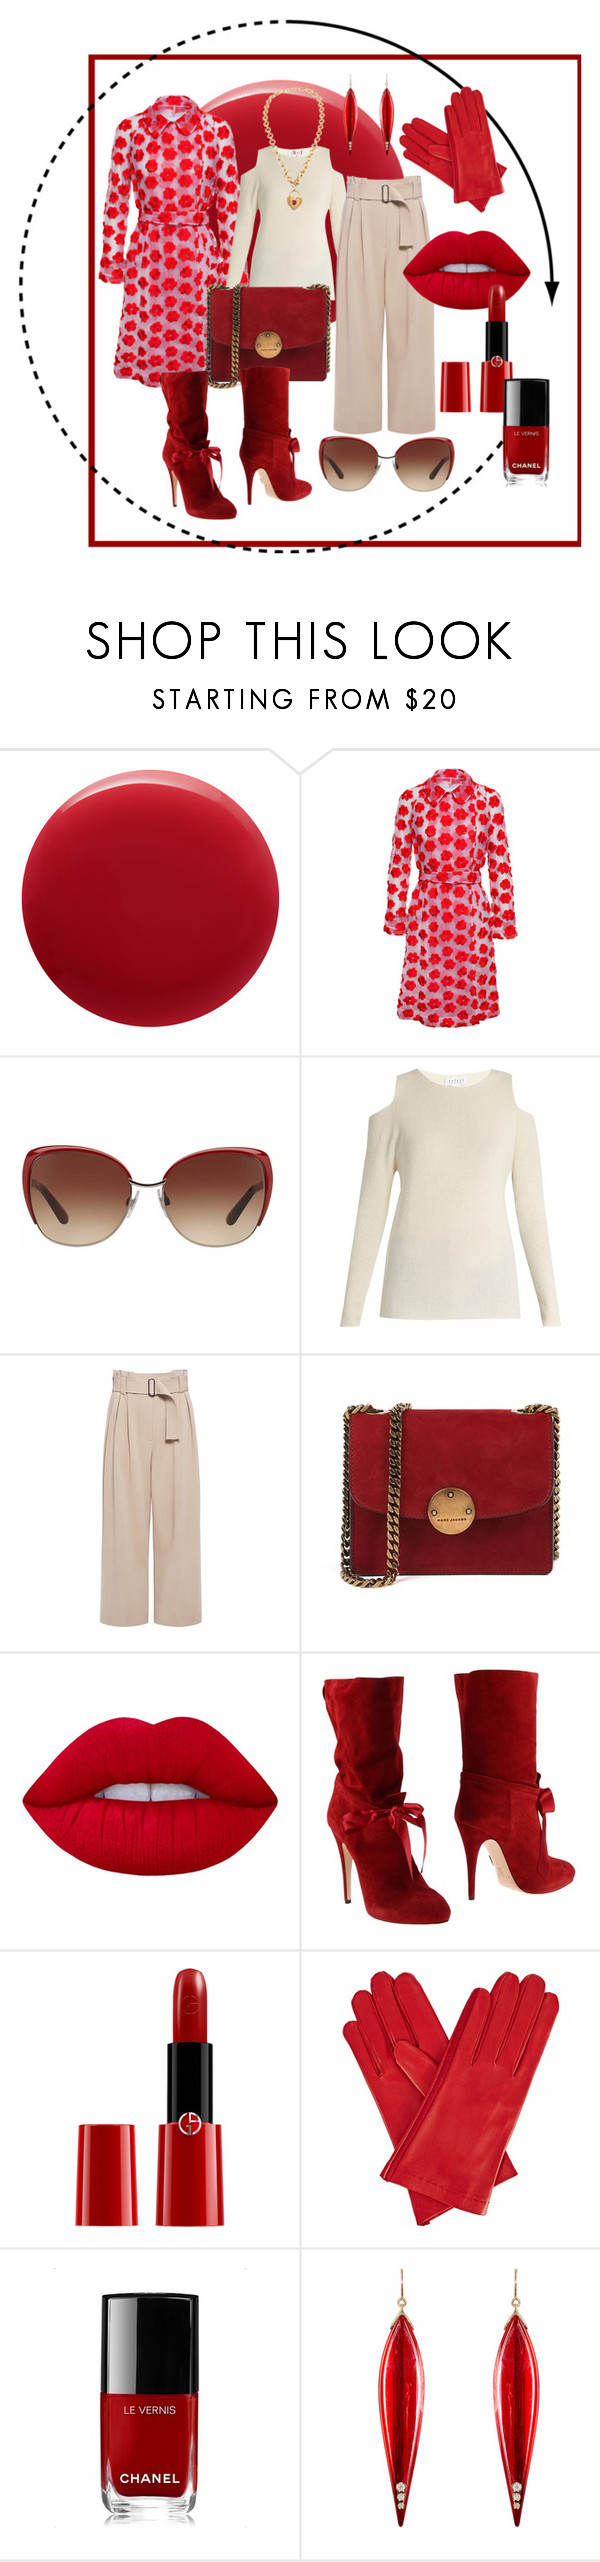 """Red"" by joie64 ❤ liked on Polyvore featuring Oribe, Simone Rocha, Dolce&Gabbana, Velvet by Graham & Spencer, A.L.C., Lime Crime, Casadei, Giorgio Armani, Gizelle Renee and Chanel"